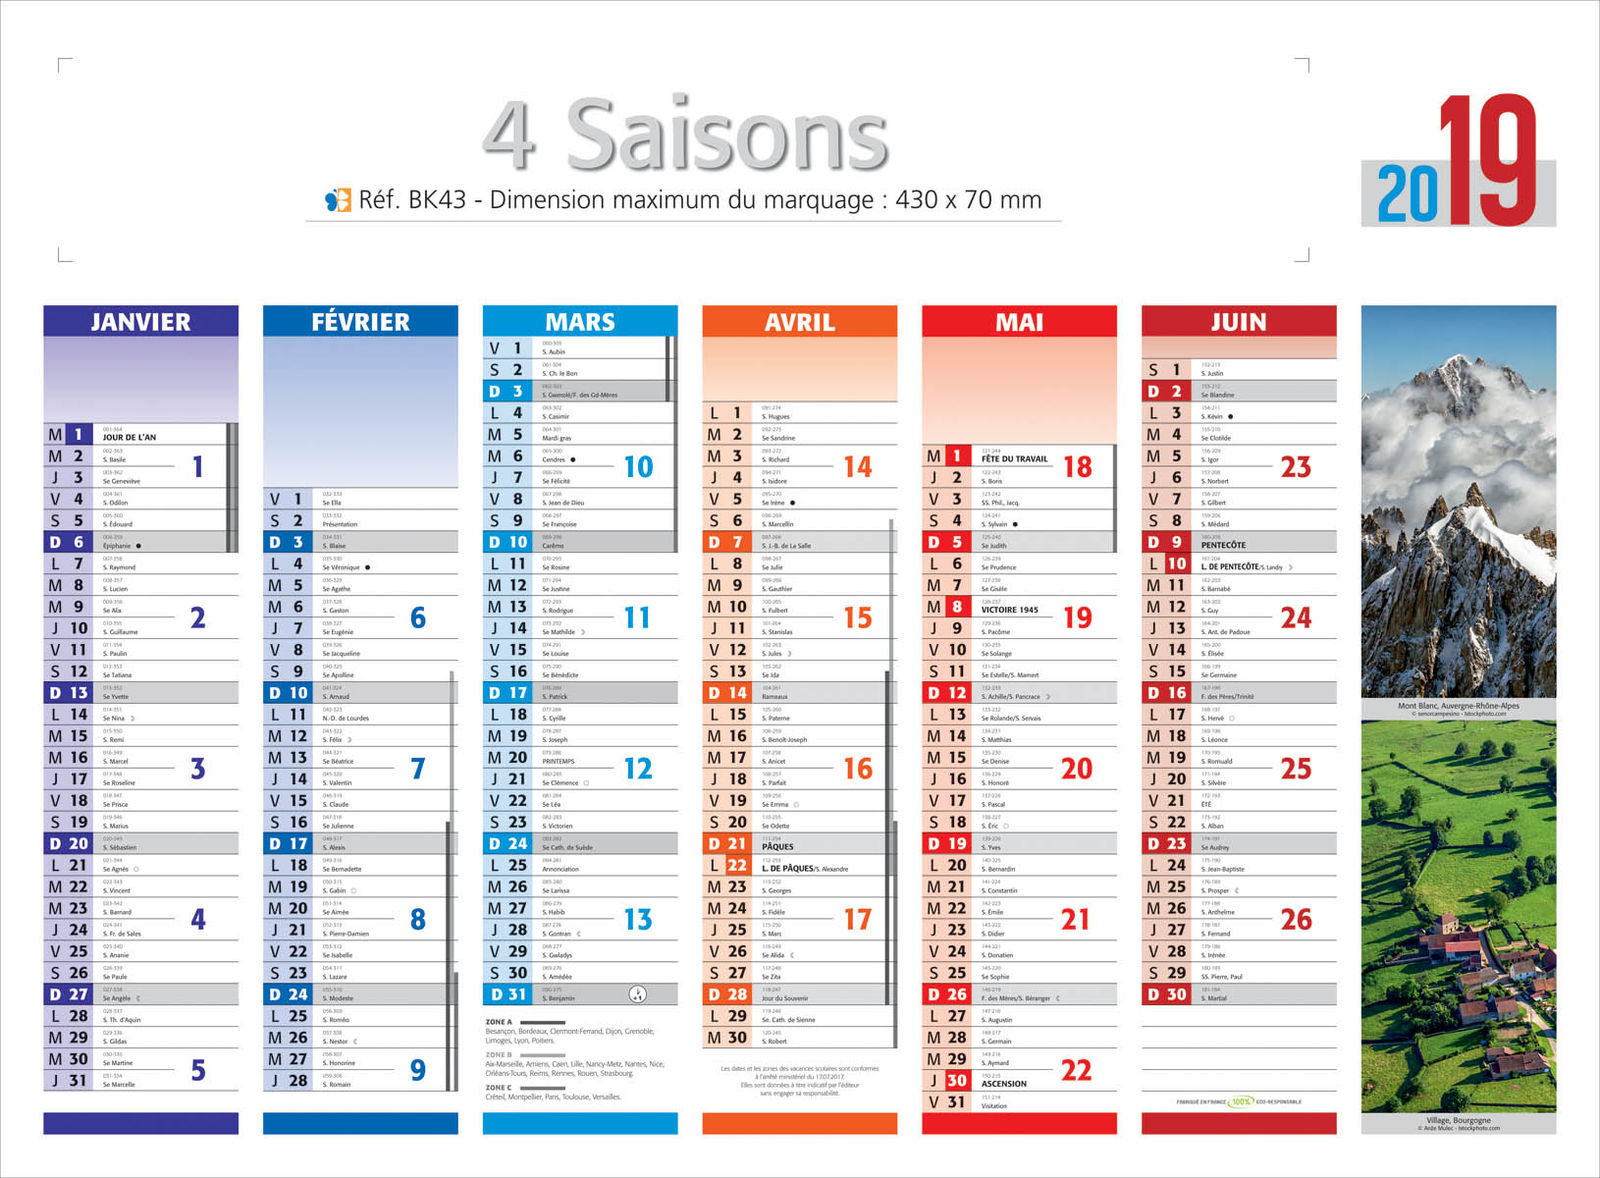 Impression les 4 saisons les 4 saisons kelprint for Calendrier photo mural gratuit